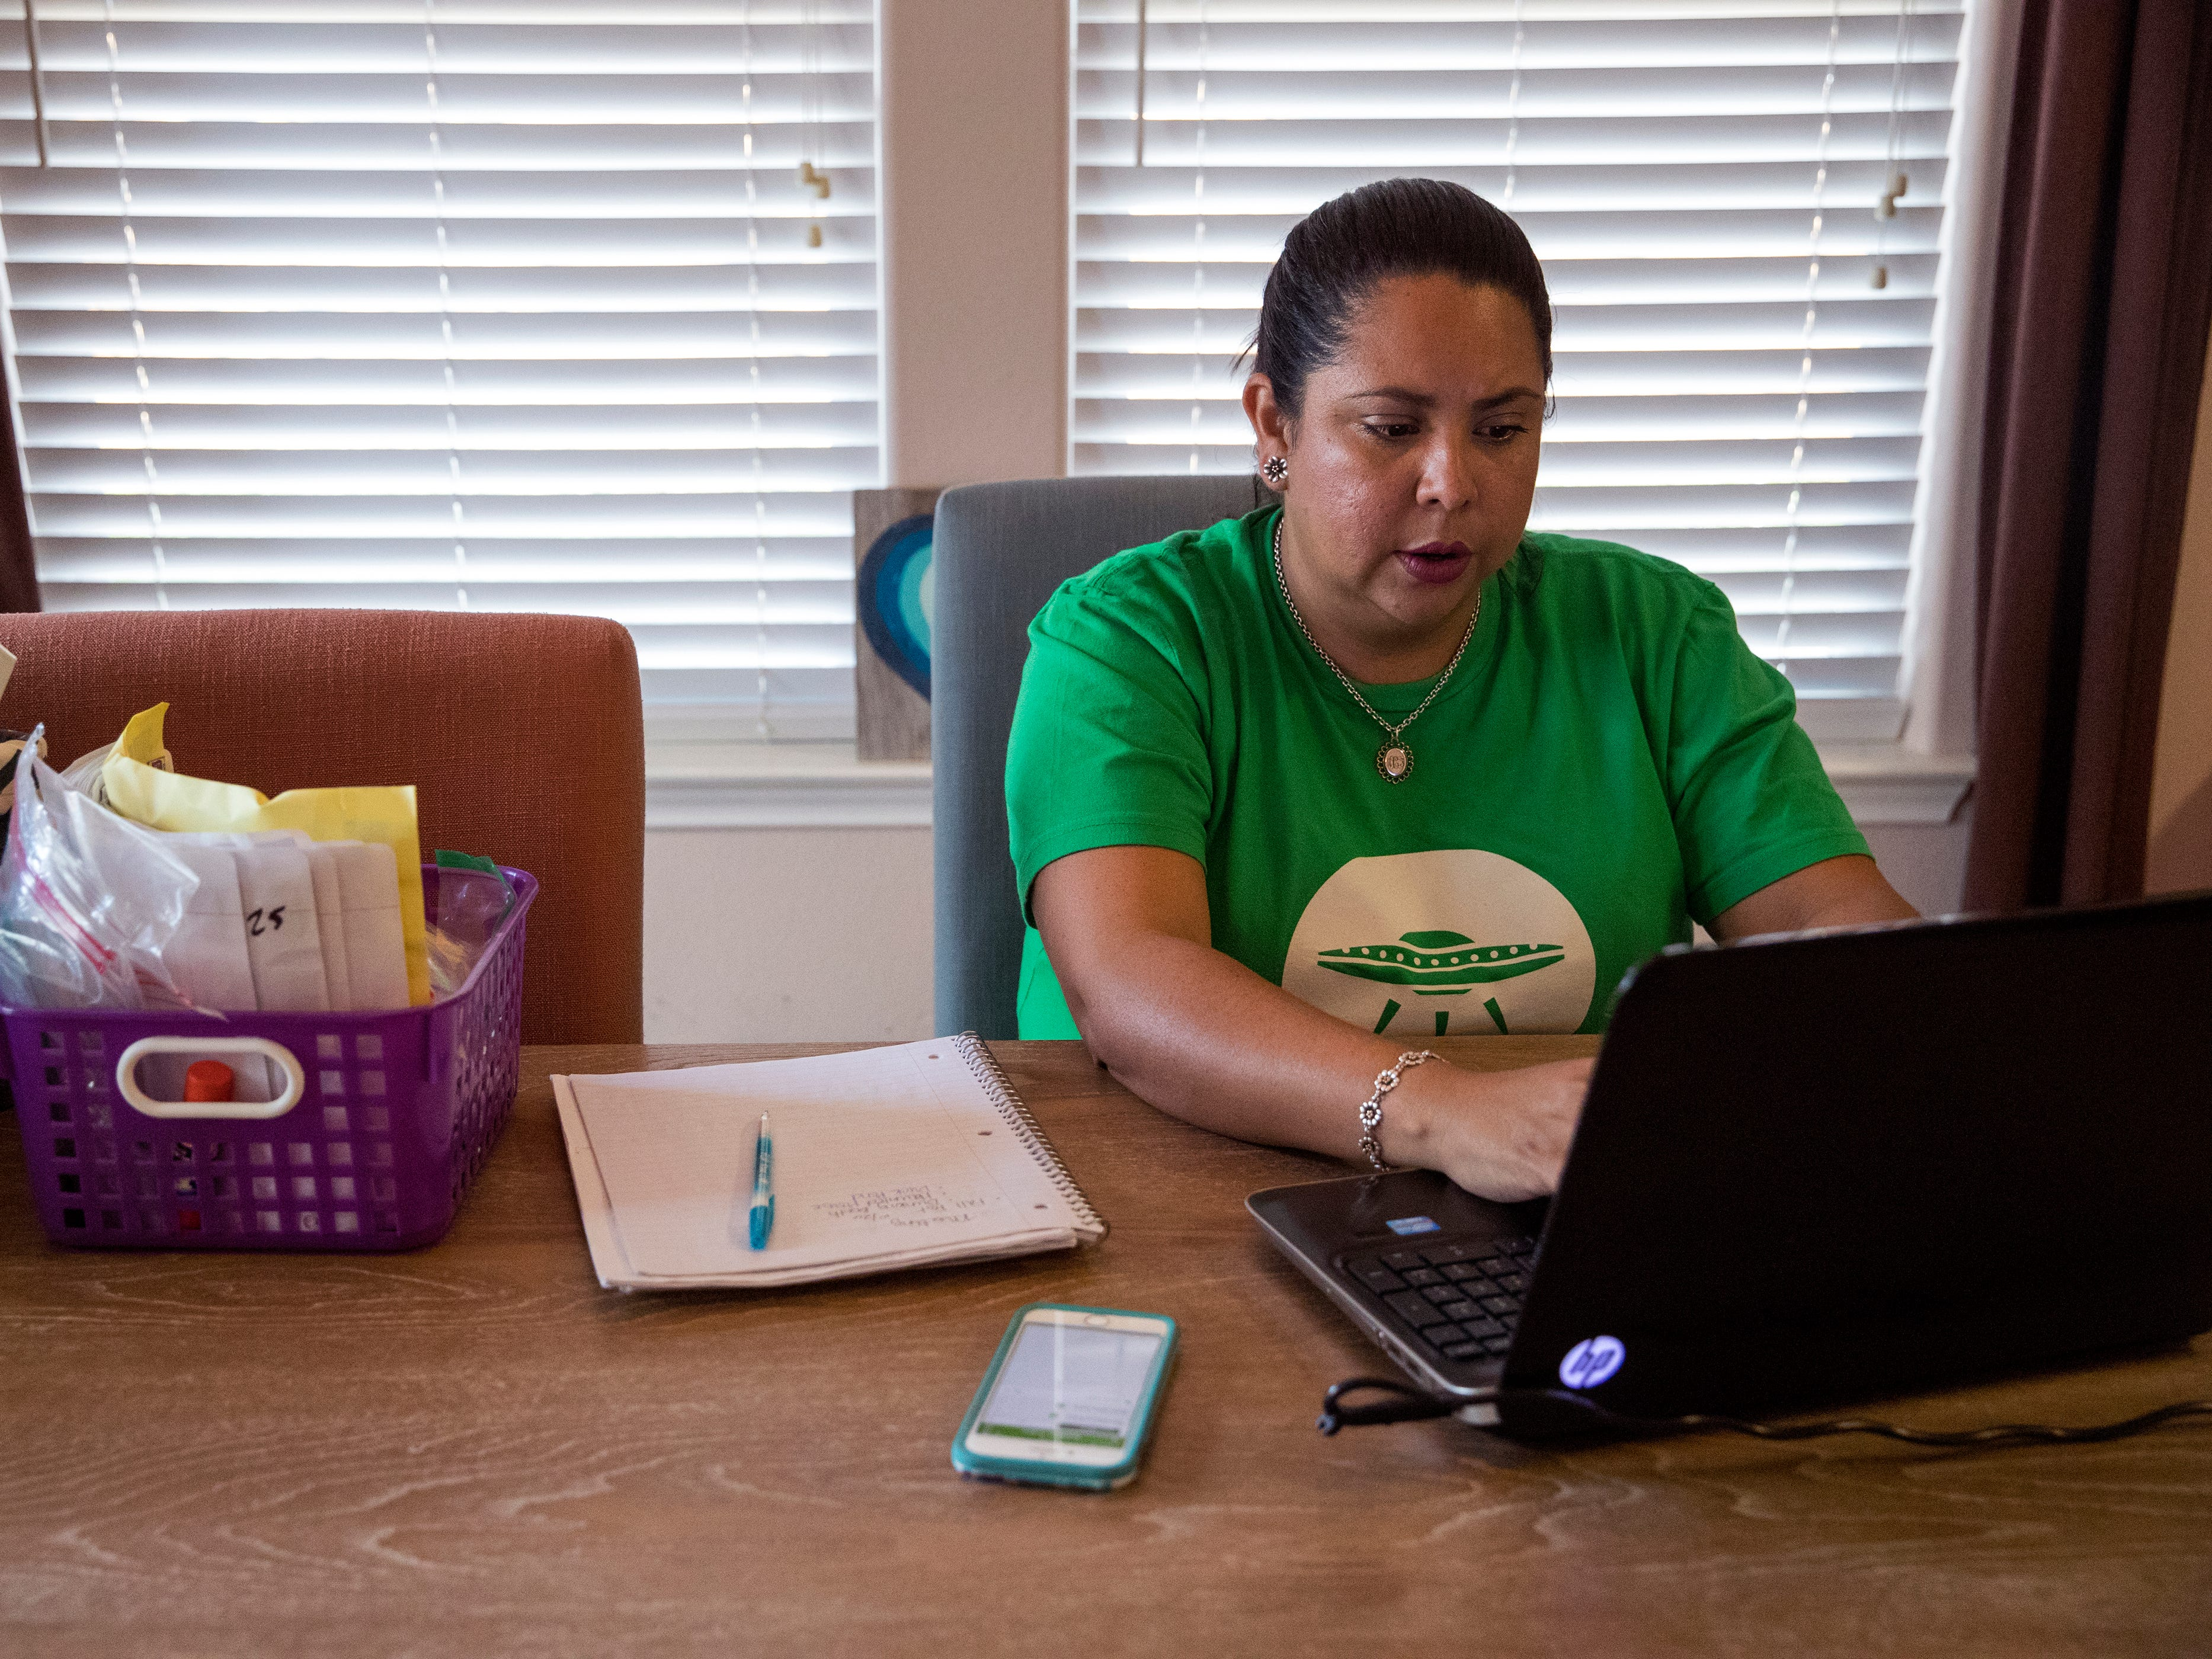 Angel Flores-Cano, a kindergarten teacher at Galvan Elementary School in Corpus Christi, TX, plans for a department meeting while also responding to parent messages at her home on September 26, 2018. The teacher in the Corpus Christi Independent School District delivers groceries with Shipt in order to help make ends meet.